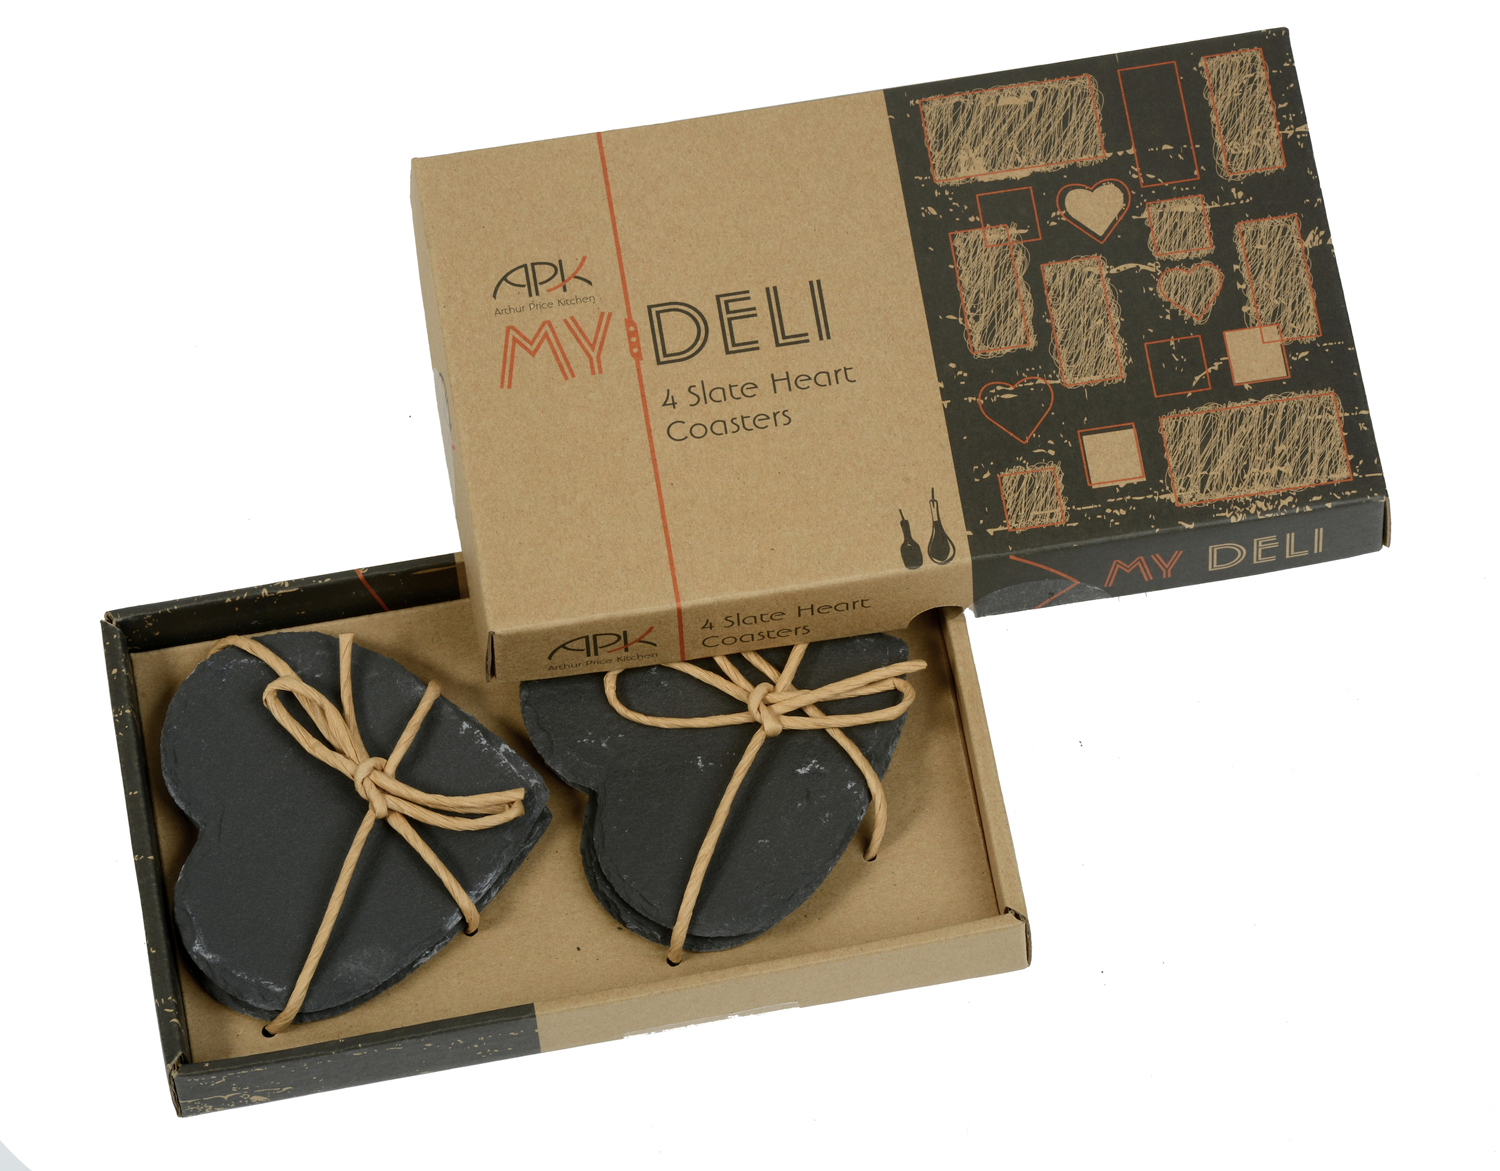 Arthur price set of 4 my deli slate heart coasters drink mats dining gift boxed ebay - Slate drink coasters ...